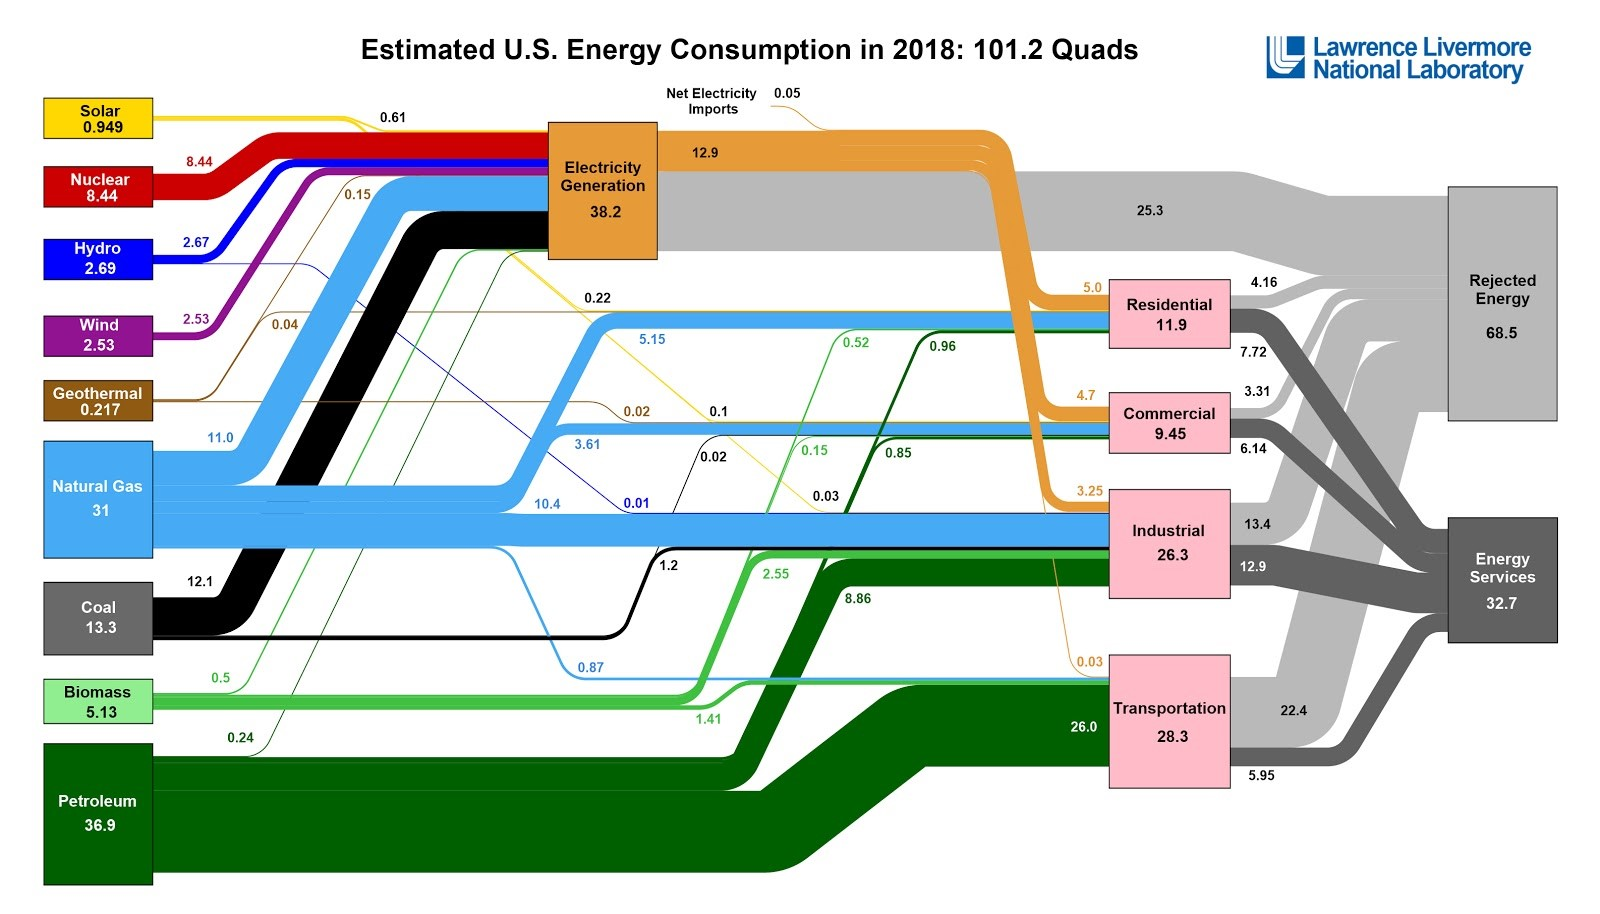 Estimated U.S. Energy Consumption in 2018